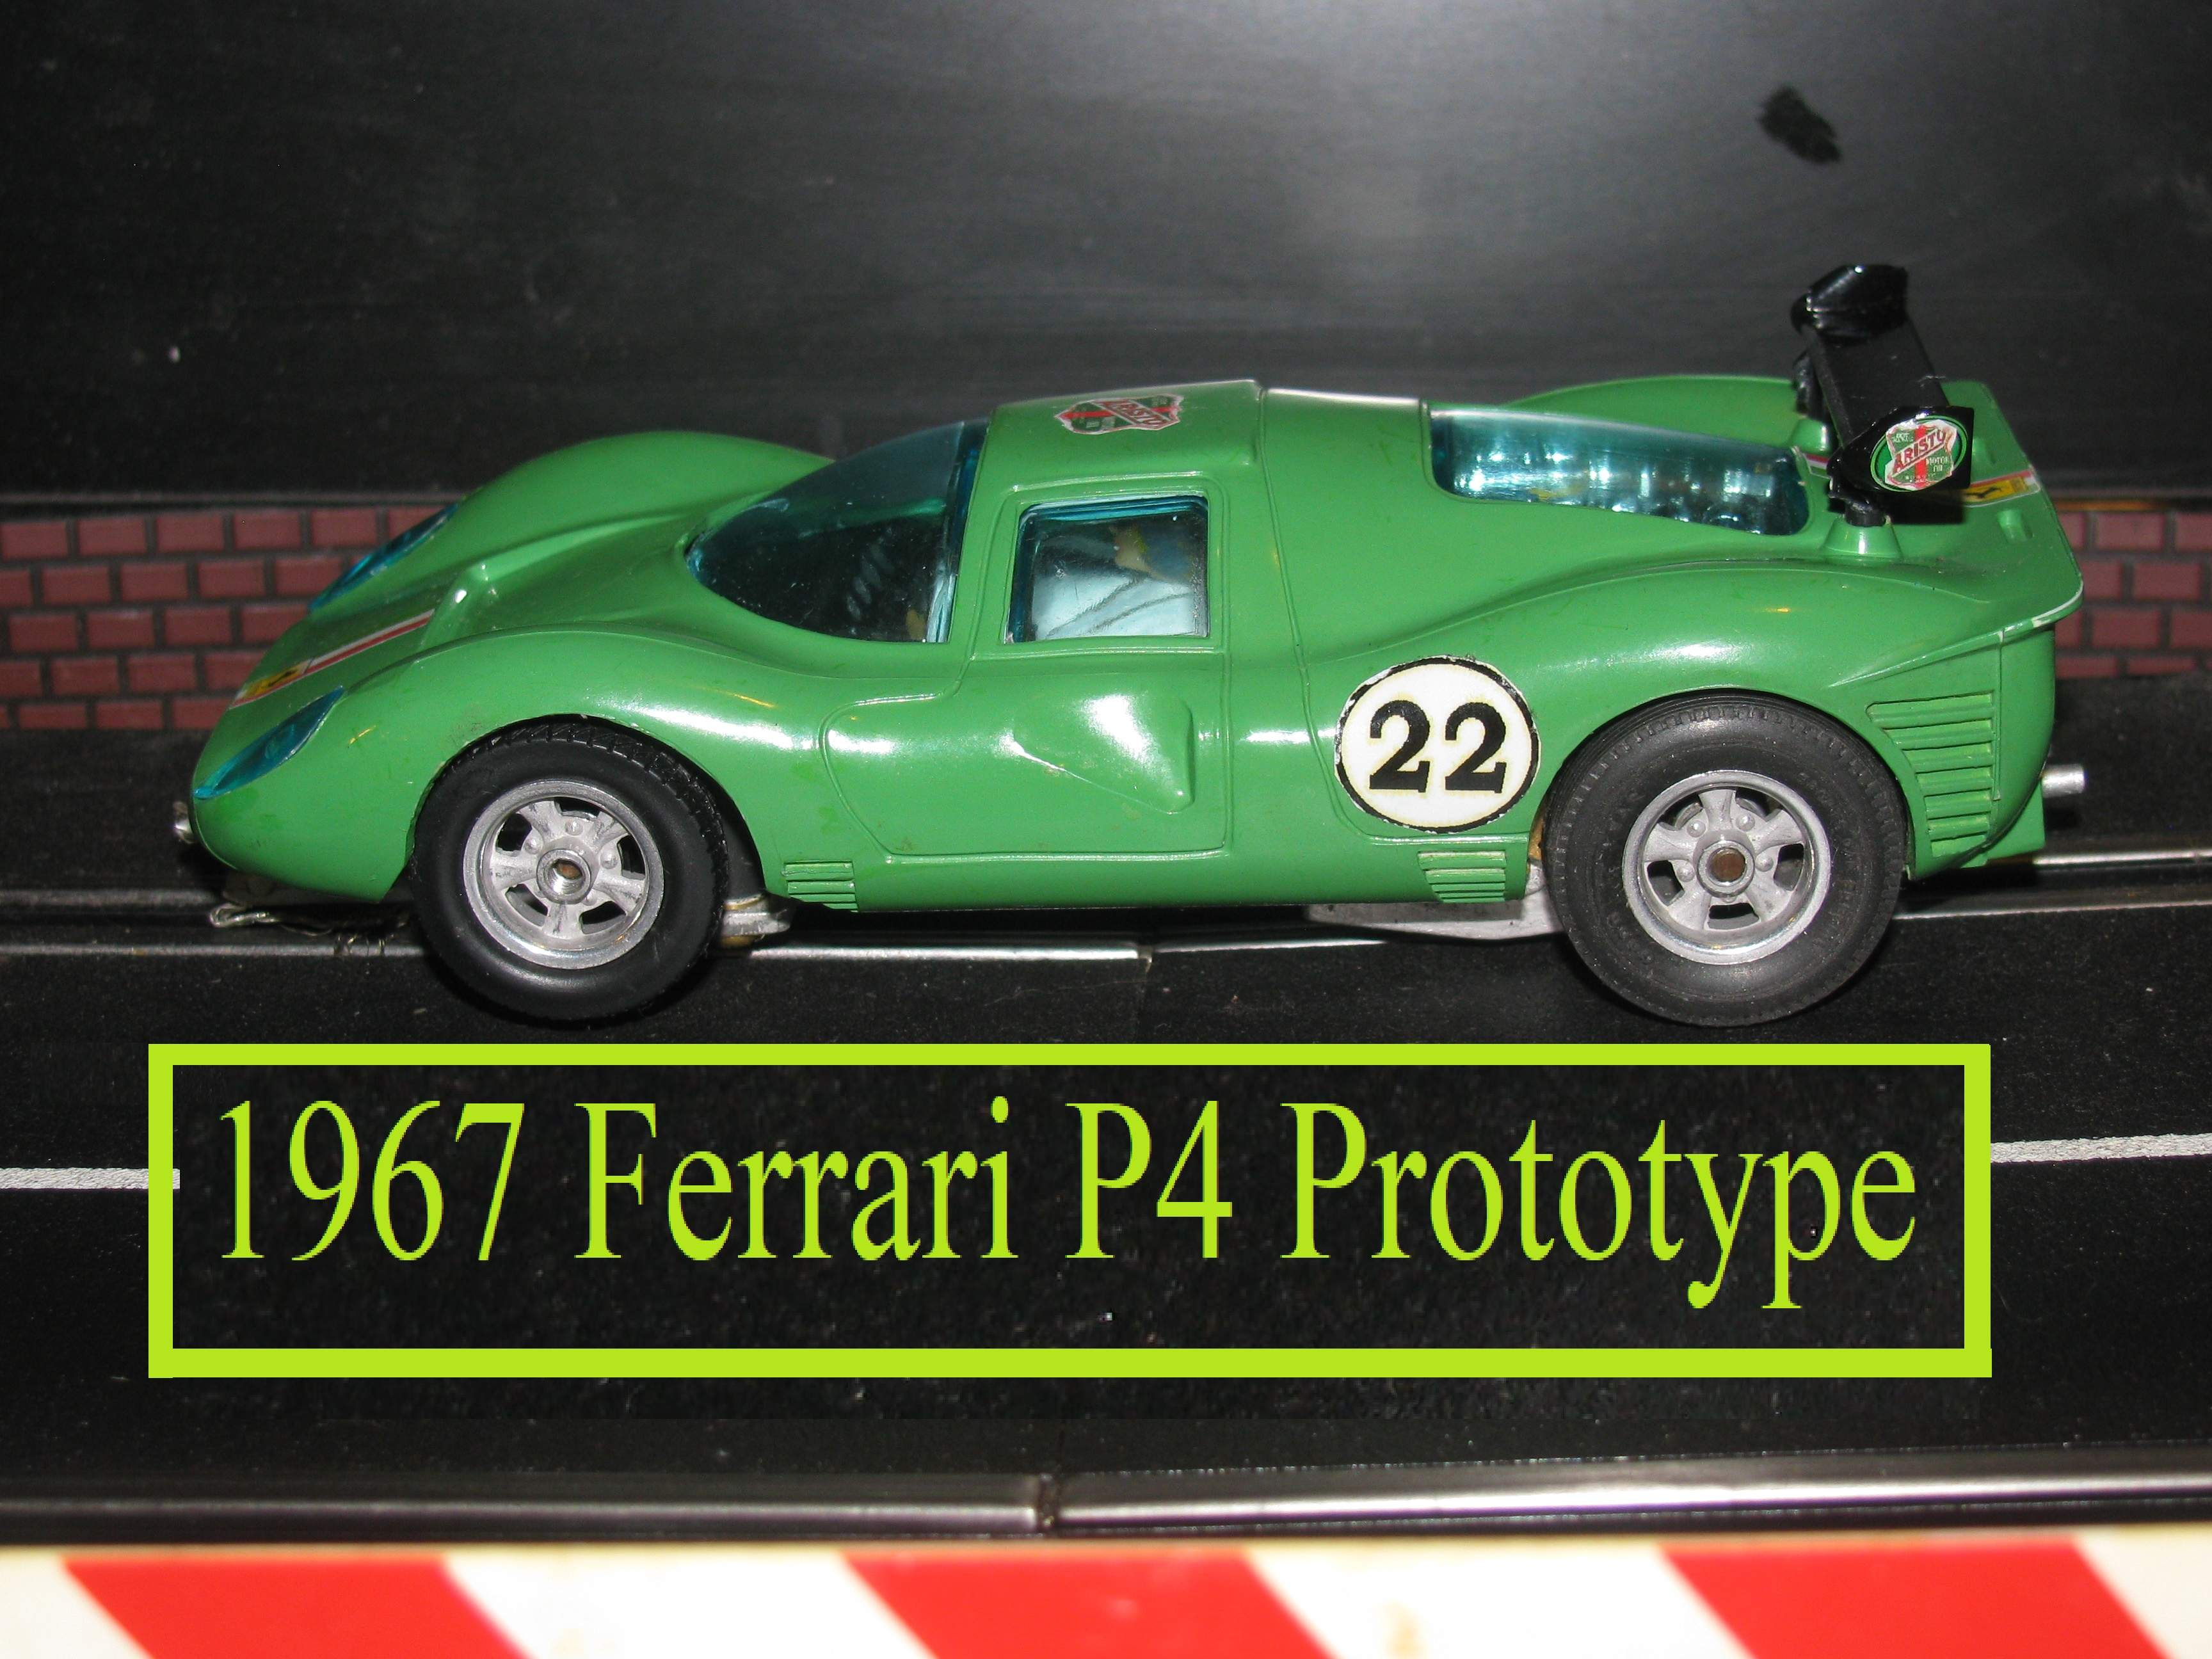 *SOLD* Vintage 1967 COX Ferrari 330 P4 Prototype Slot Car 1/24 Scale